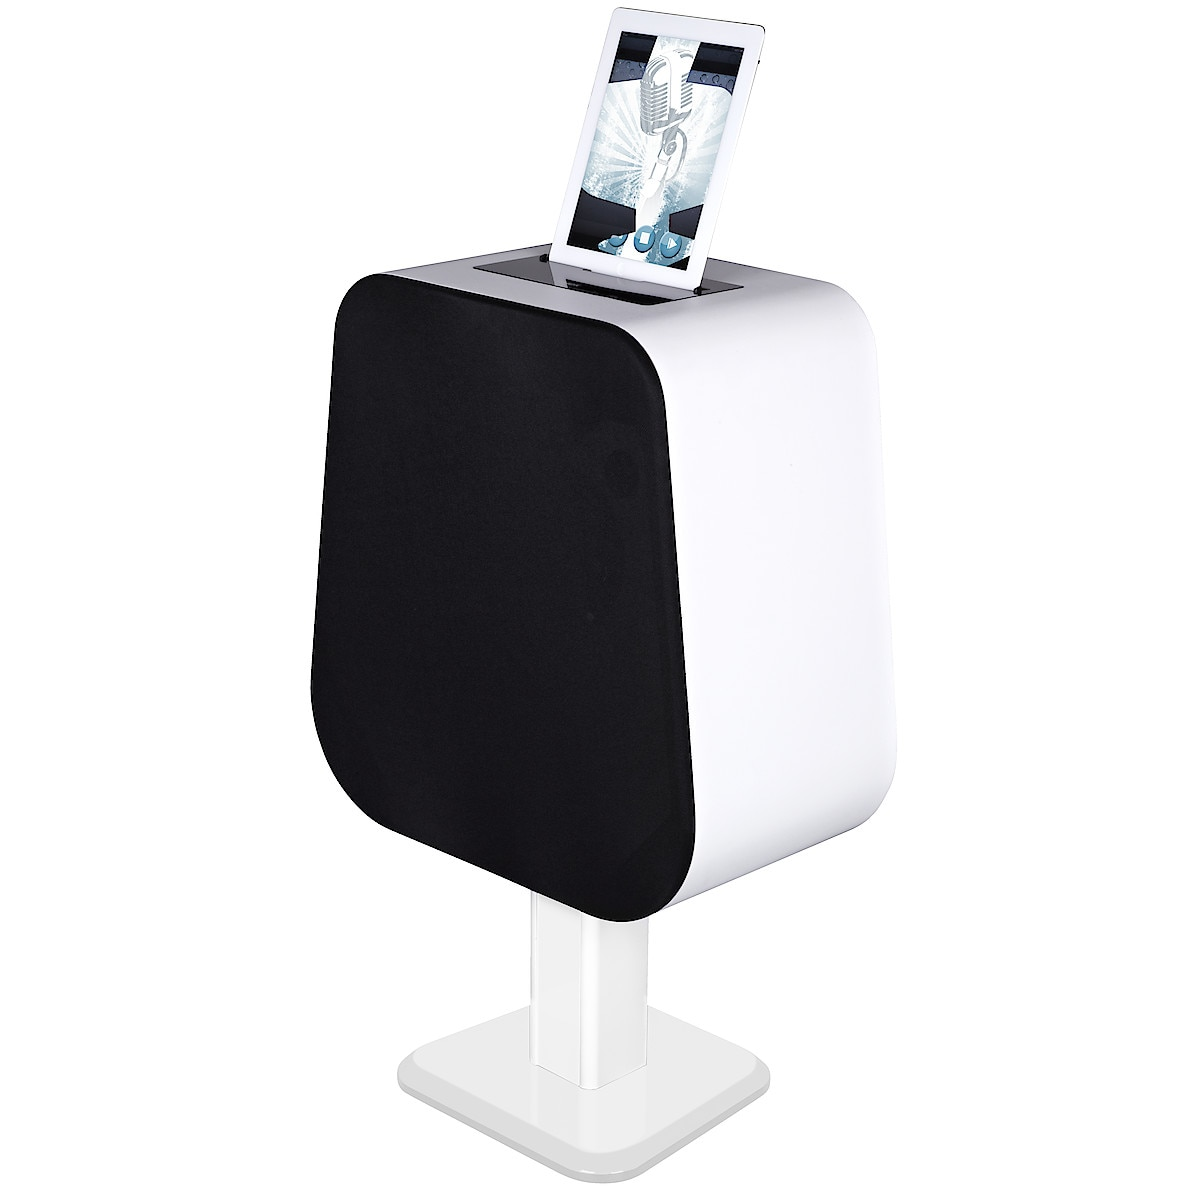 Bluetooth Speaker Tower for iPad/iPod/iPhone